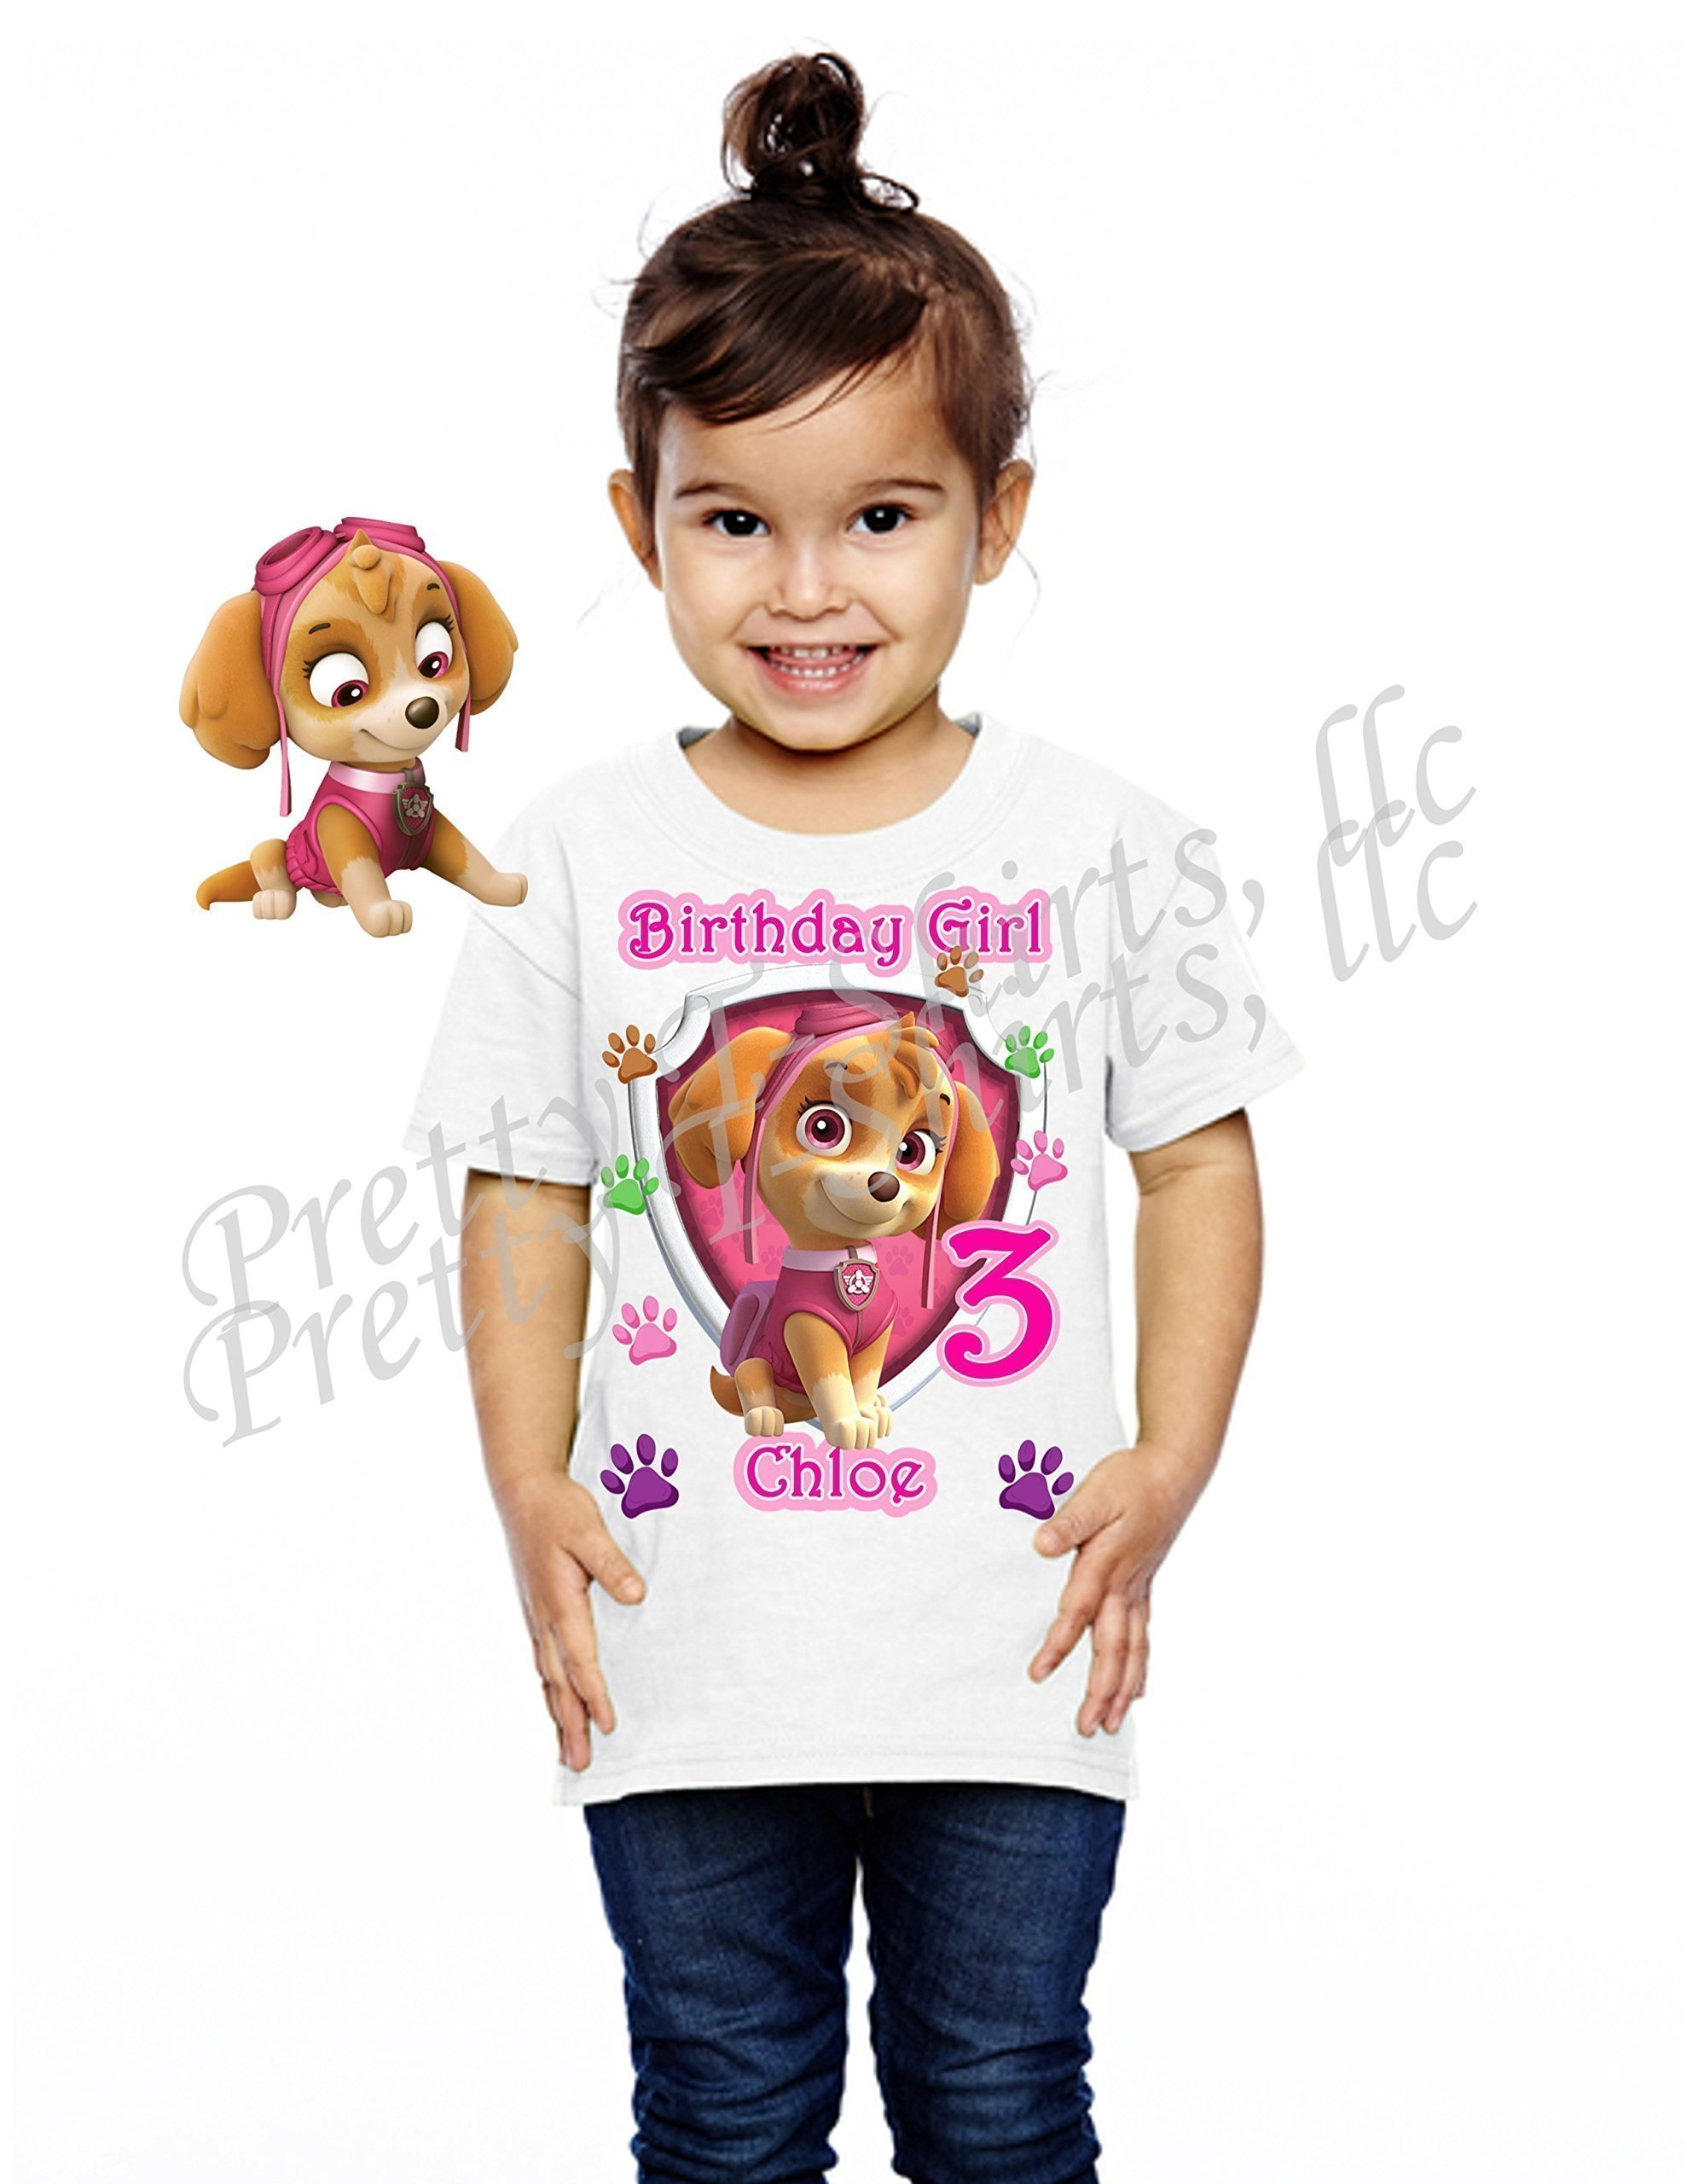 Girl Paw Patrol Birthday Shirt, ADD any name and age, SKYE Birthday Party, FAMILY Matching Shirts, Birthday Girl Shirts, VISIT OUR SHOP!!